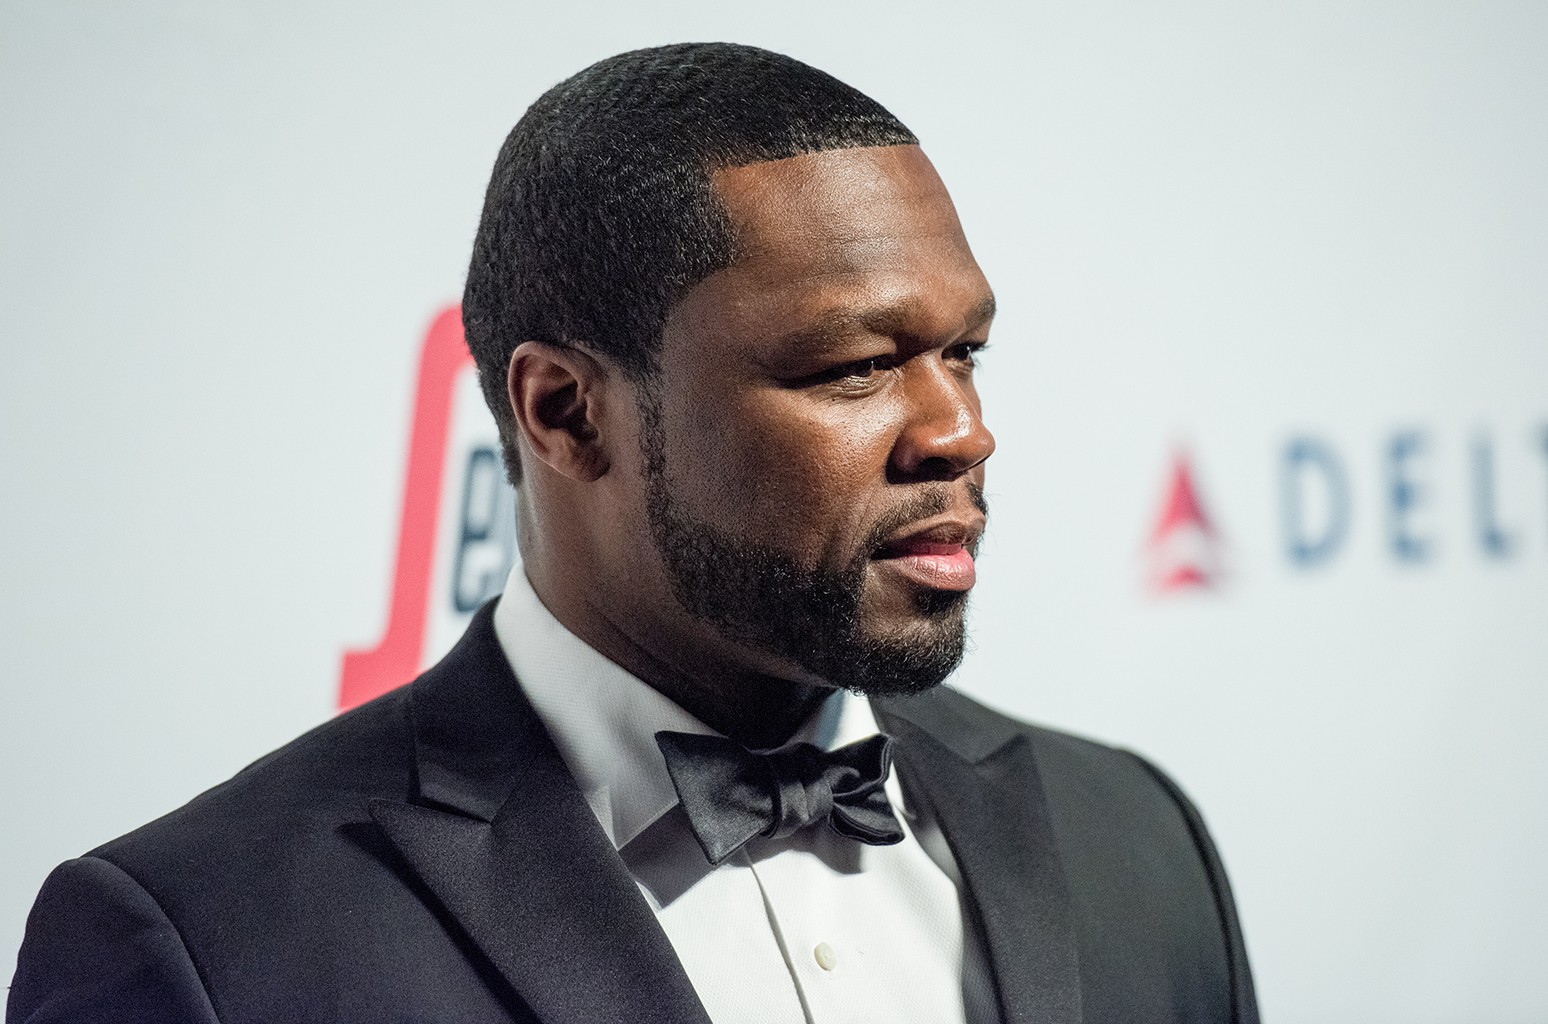 50 Cent in 2016